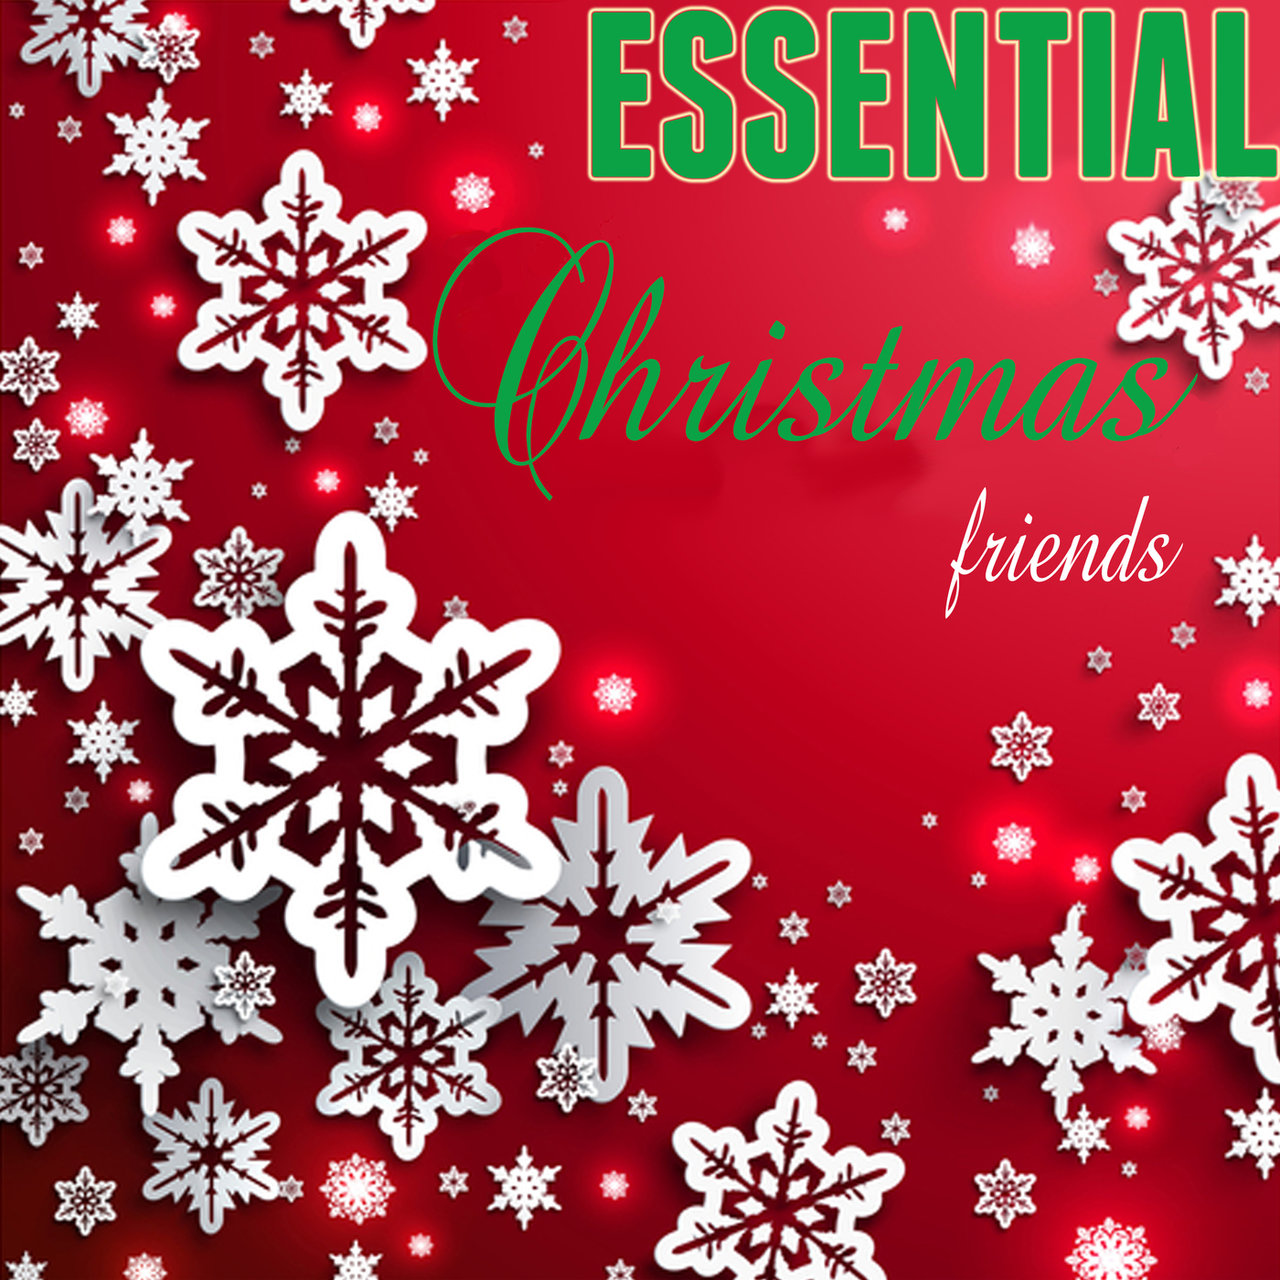 Essential Christmas Friends